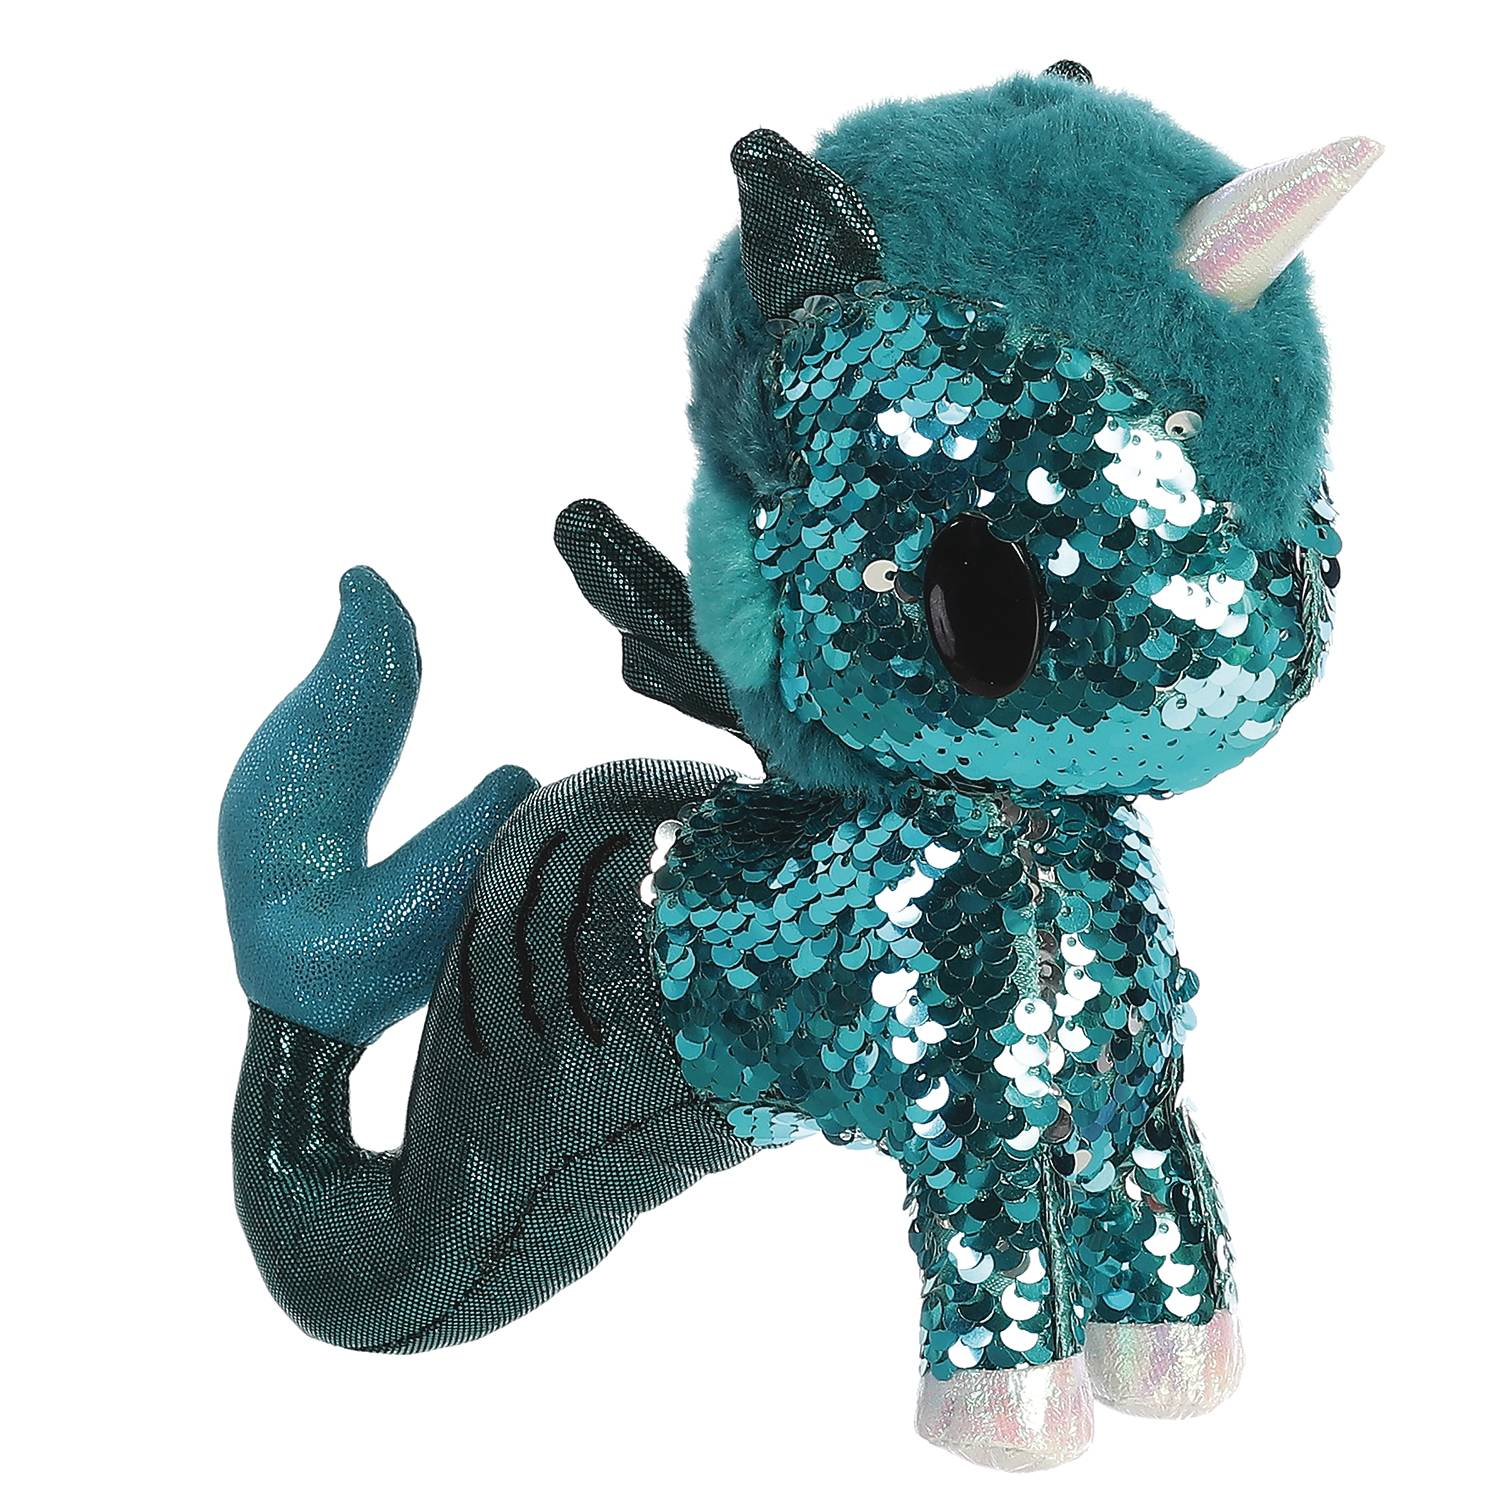 TOKIDOKI MERMICORNO SEQUIN CERULEAN 7.5IN PLUSH